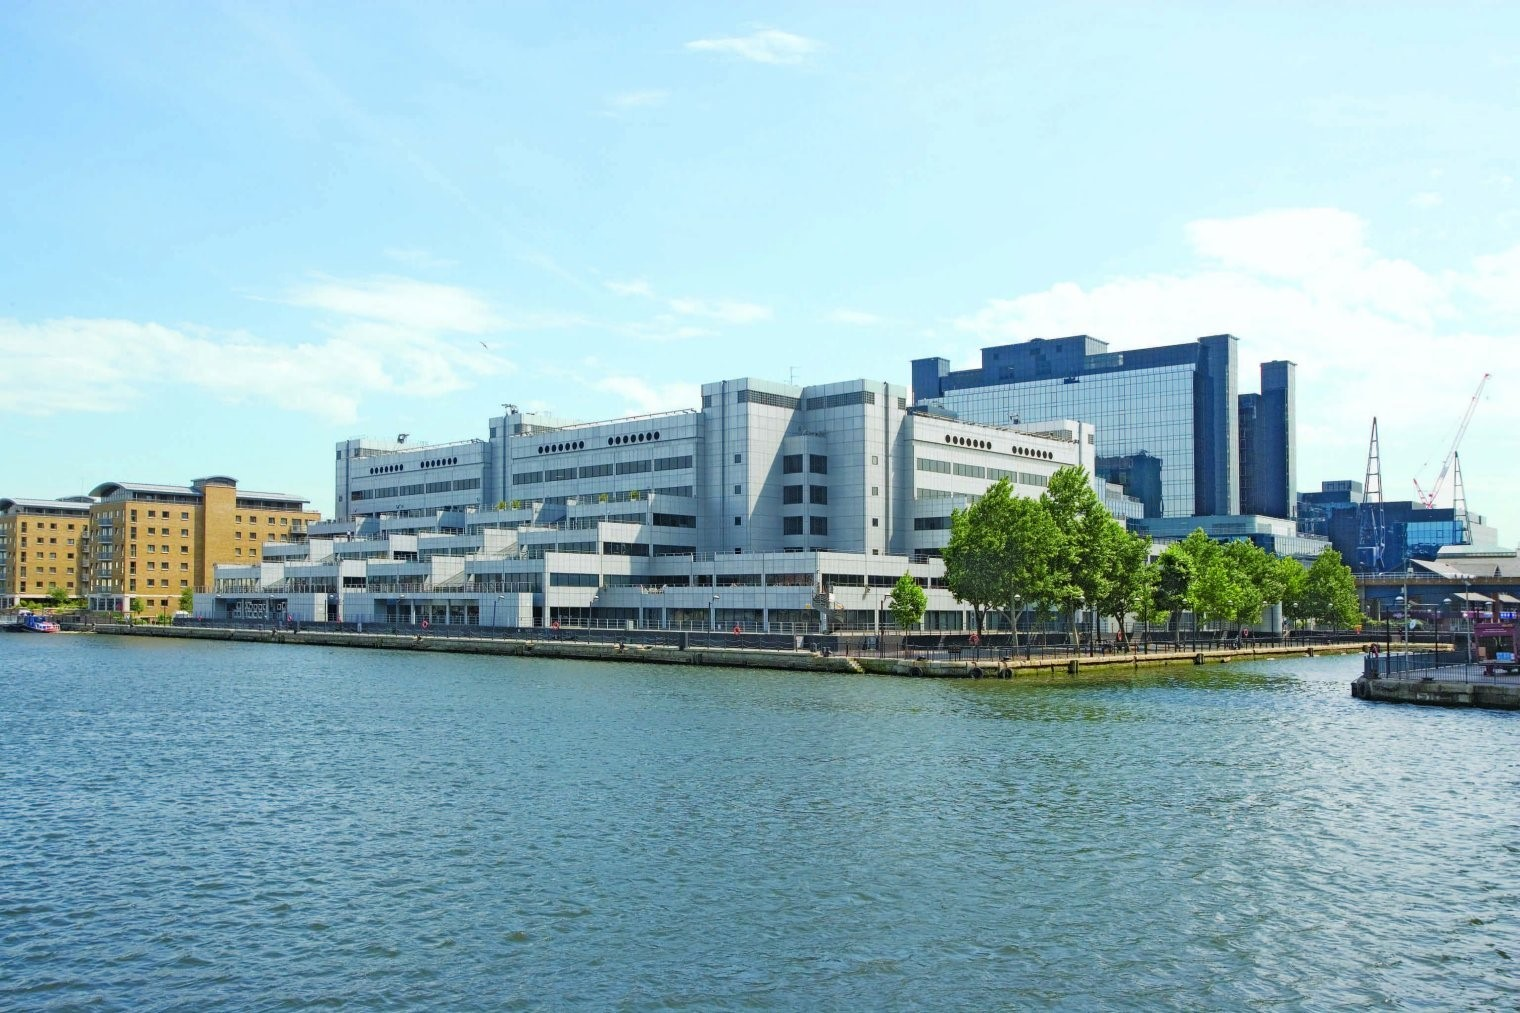 Picture of Cct Venues - Canary Wharf, South Quay